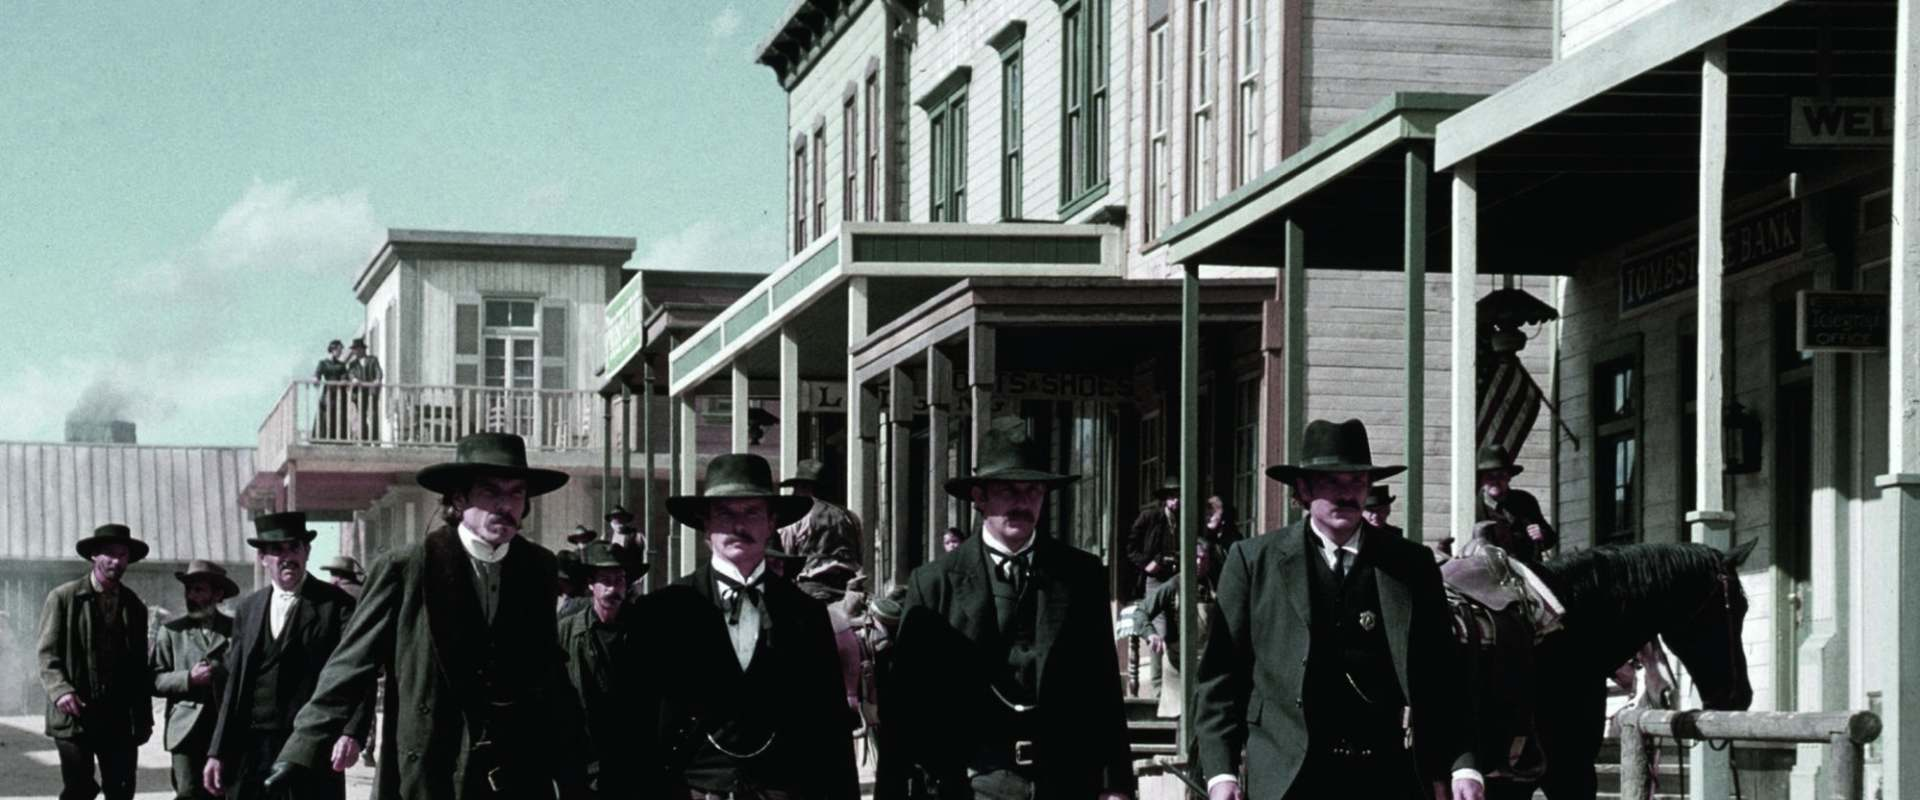 Wyatt Earp background 1